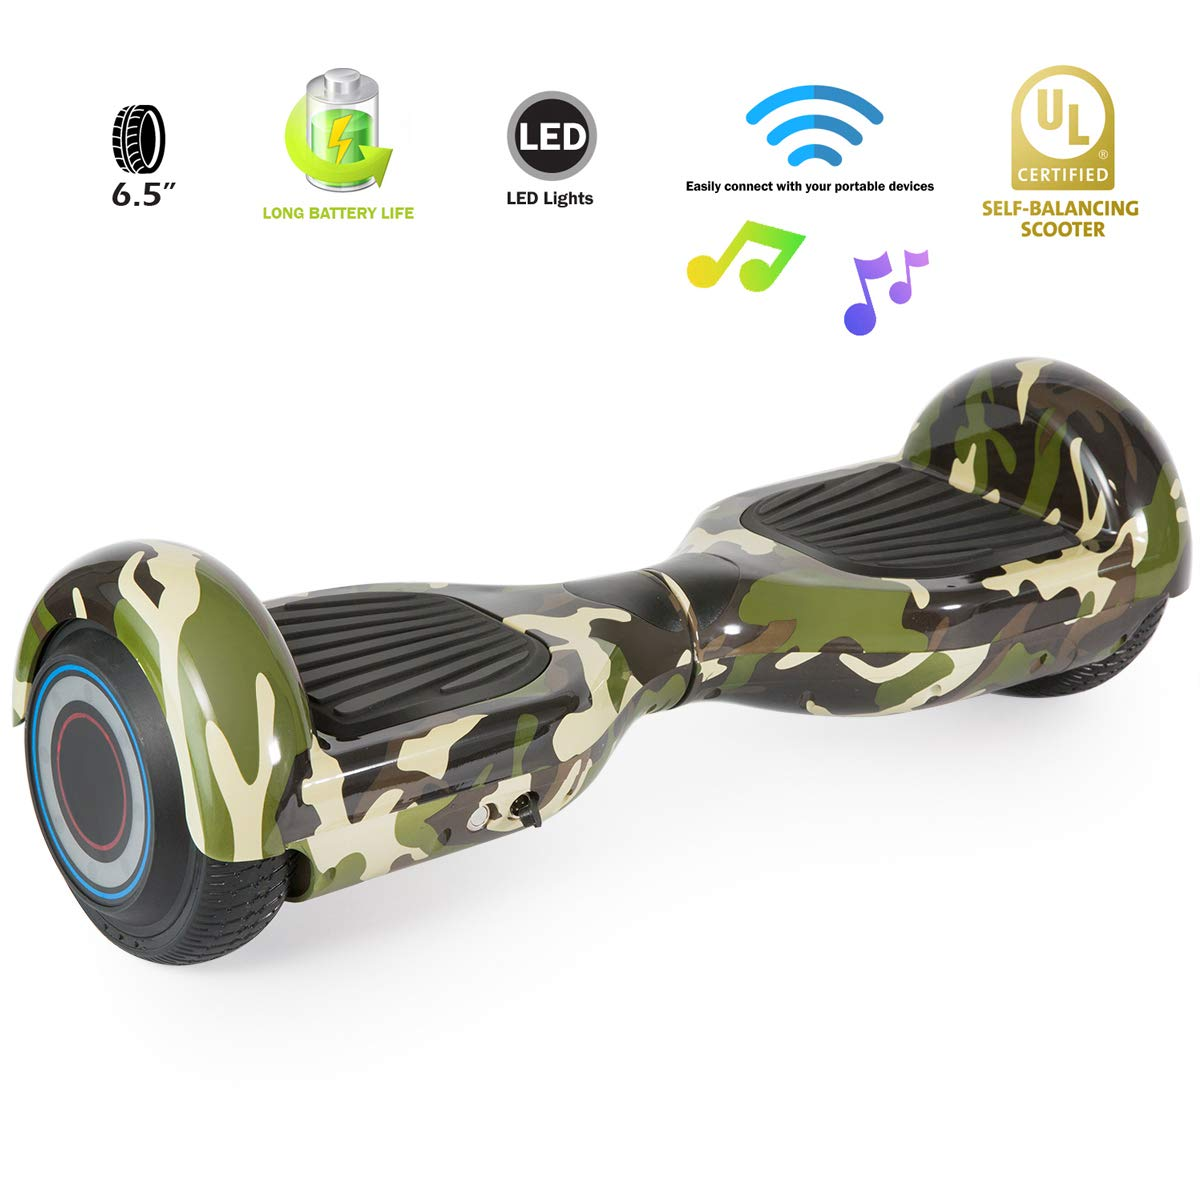 XPRIT Easter Sale Hoverboard w/Bluetooth Speaker (Camouflage) by XPRIT (Image #4)